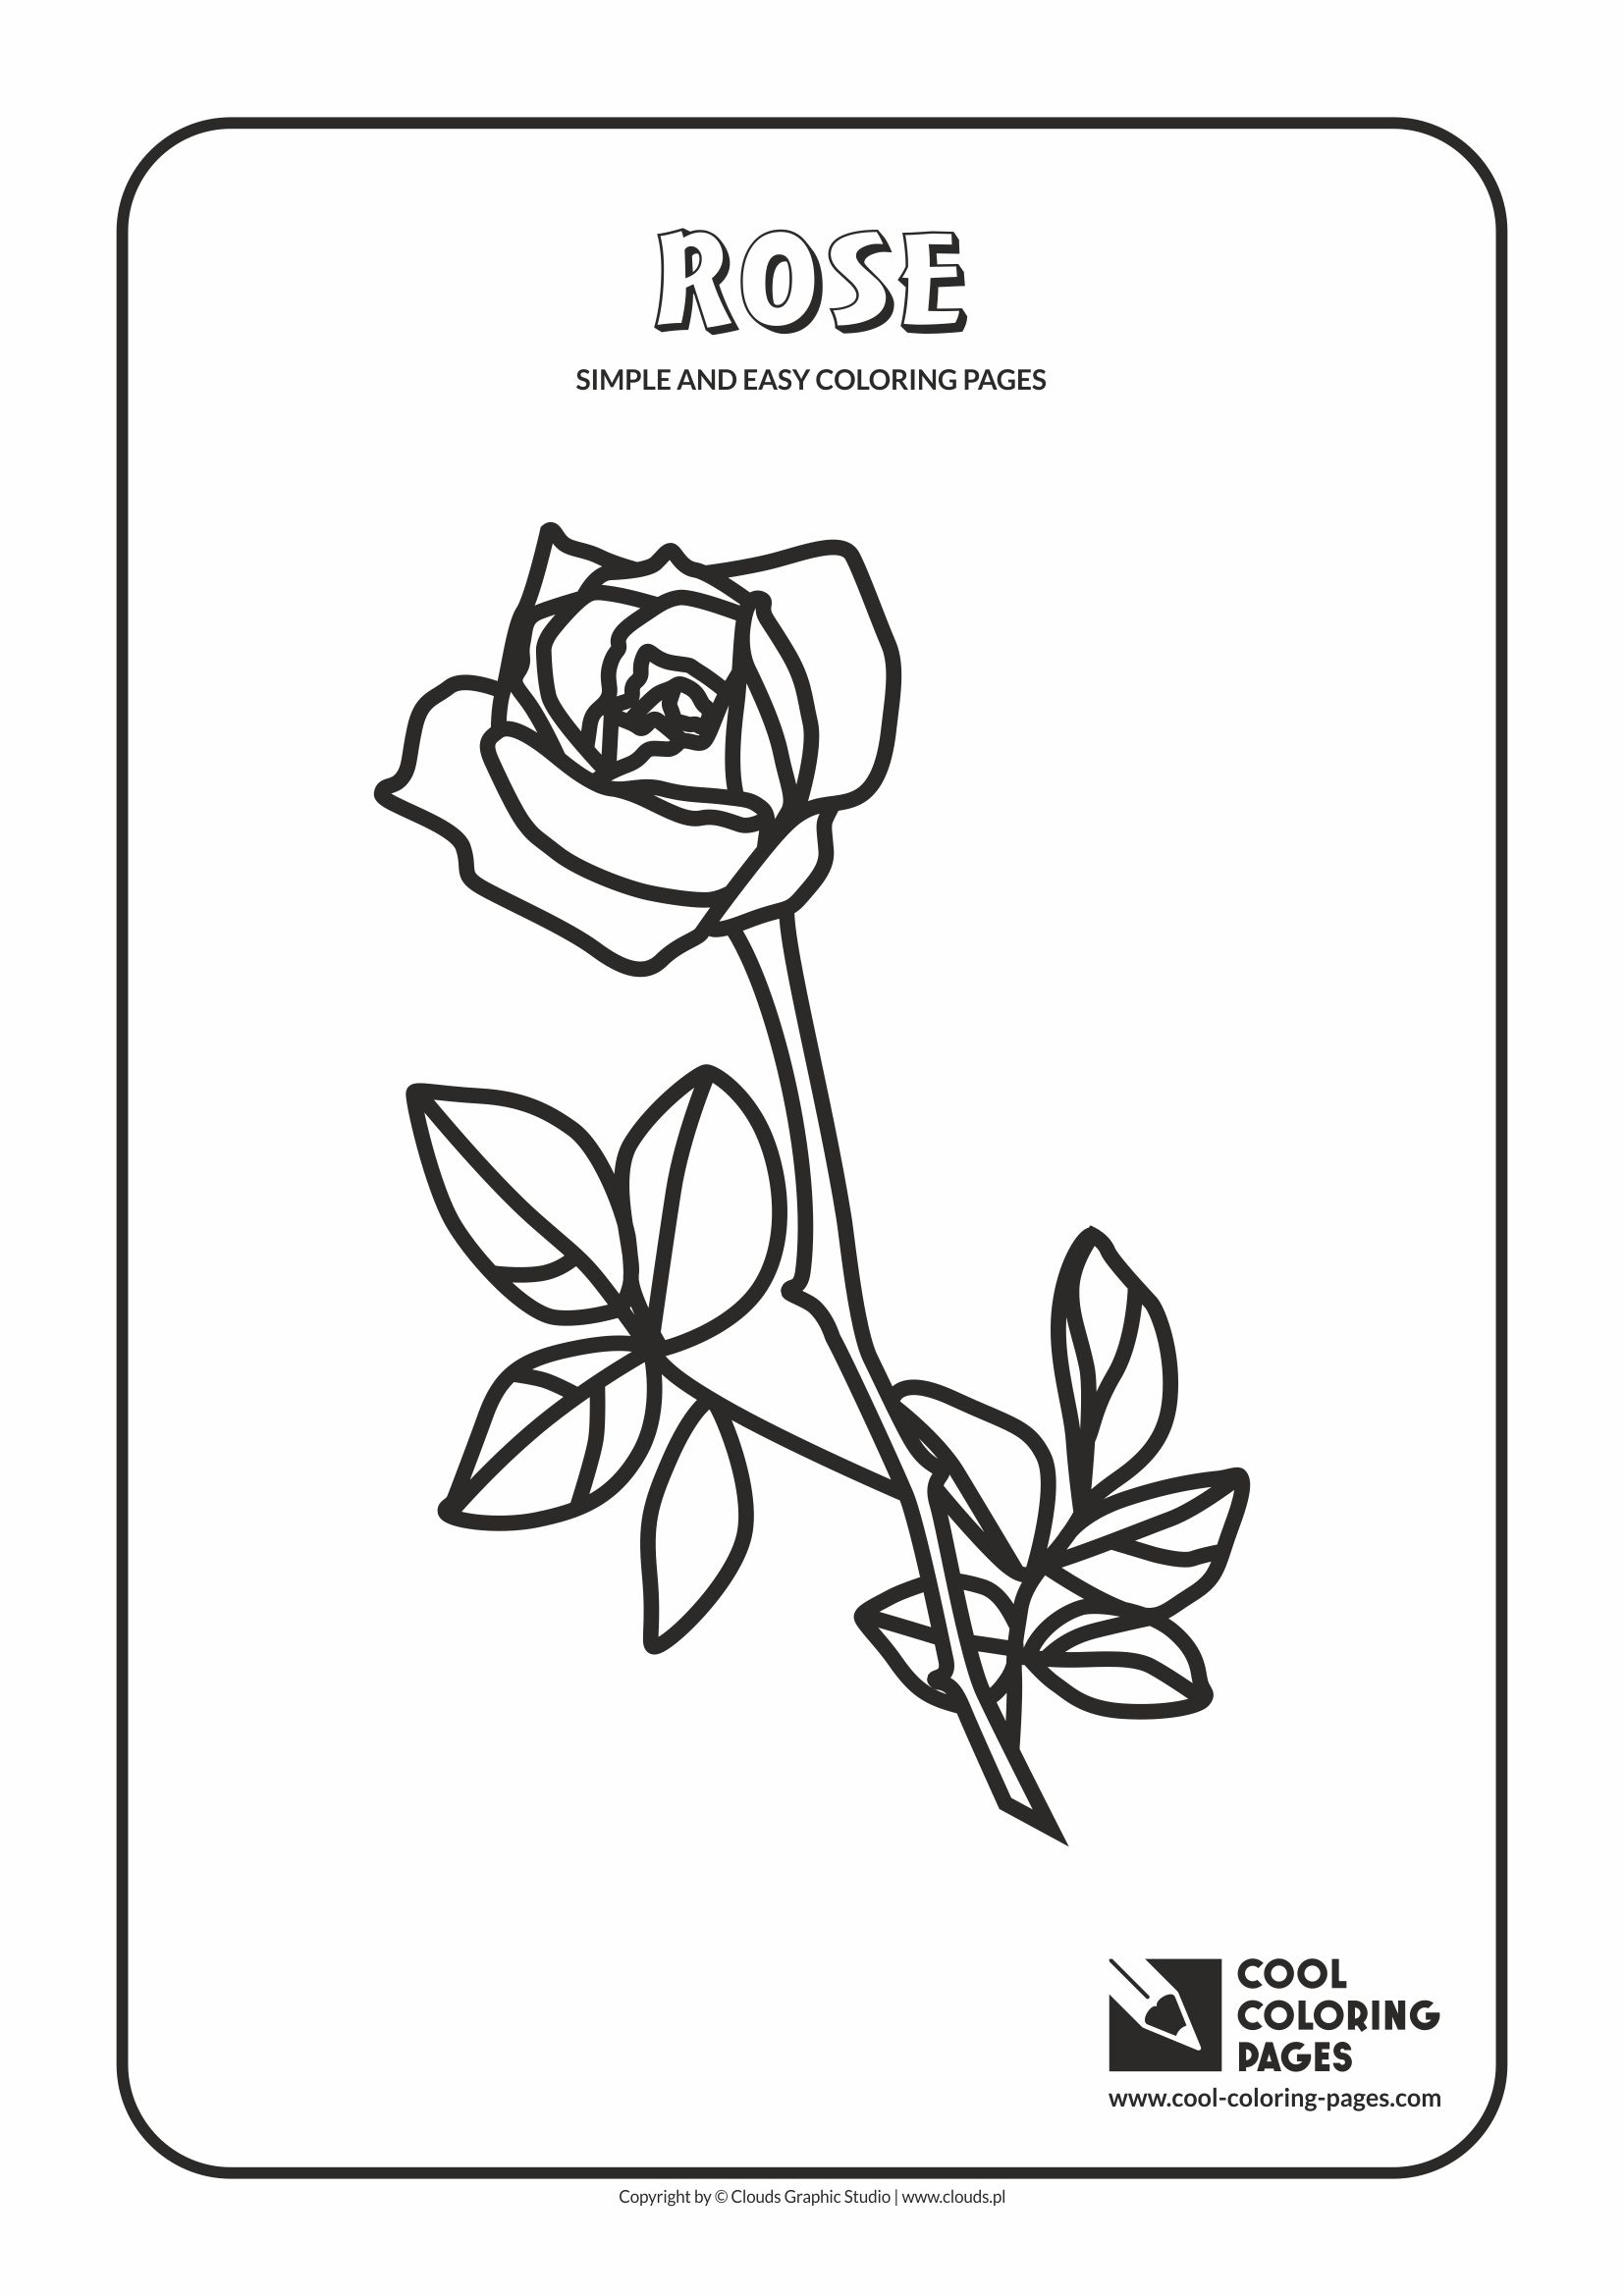 Simple and easy coloring pages for toddlers - Rose